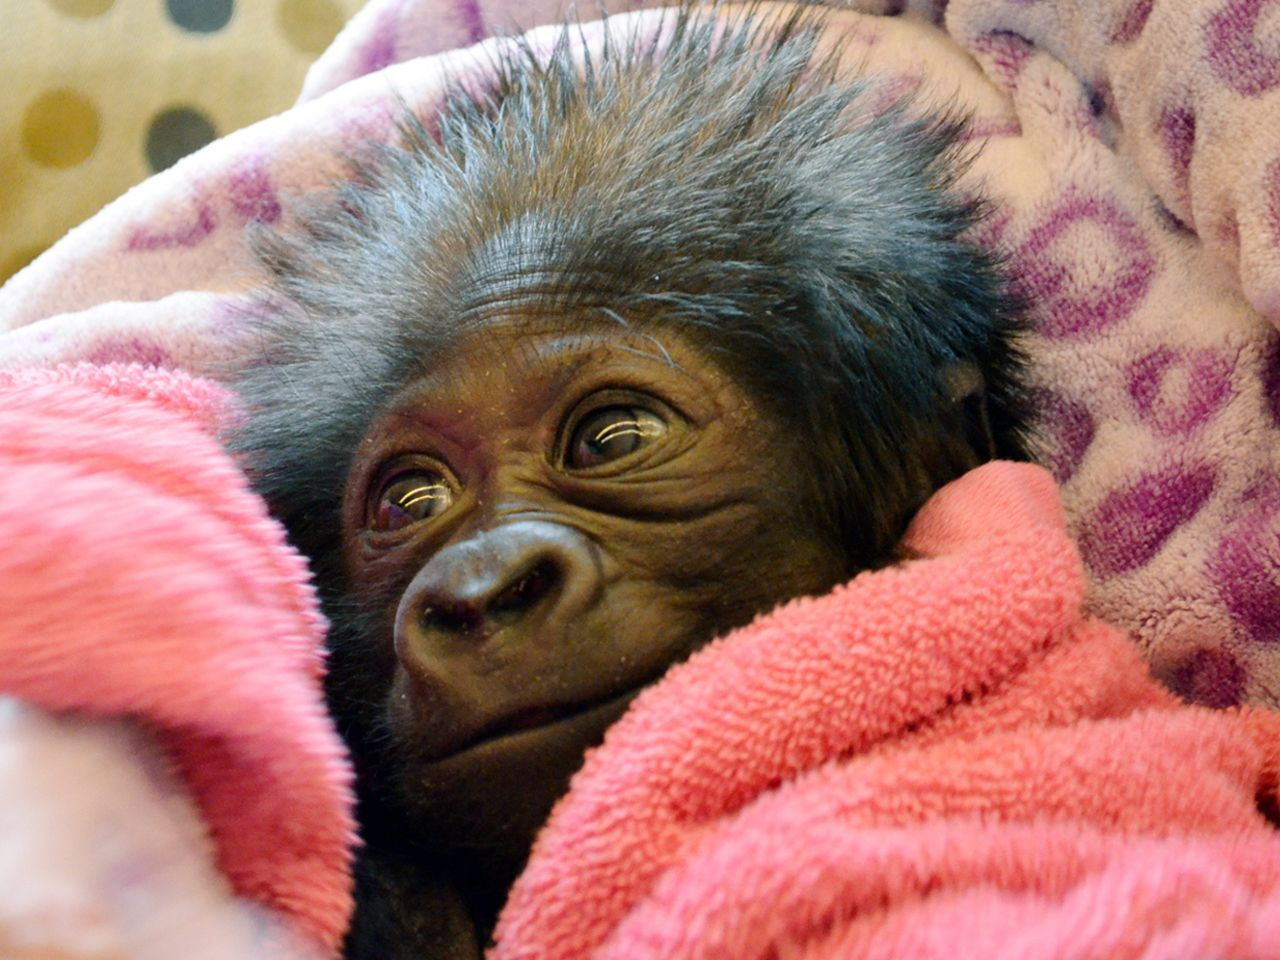 Pin By Today Show On Cuteness Baby Gorillas Gorilla Zooborns